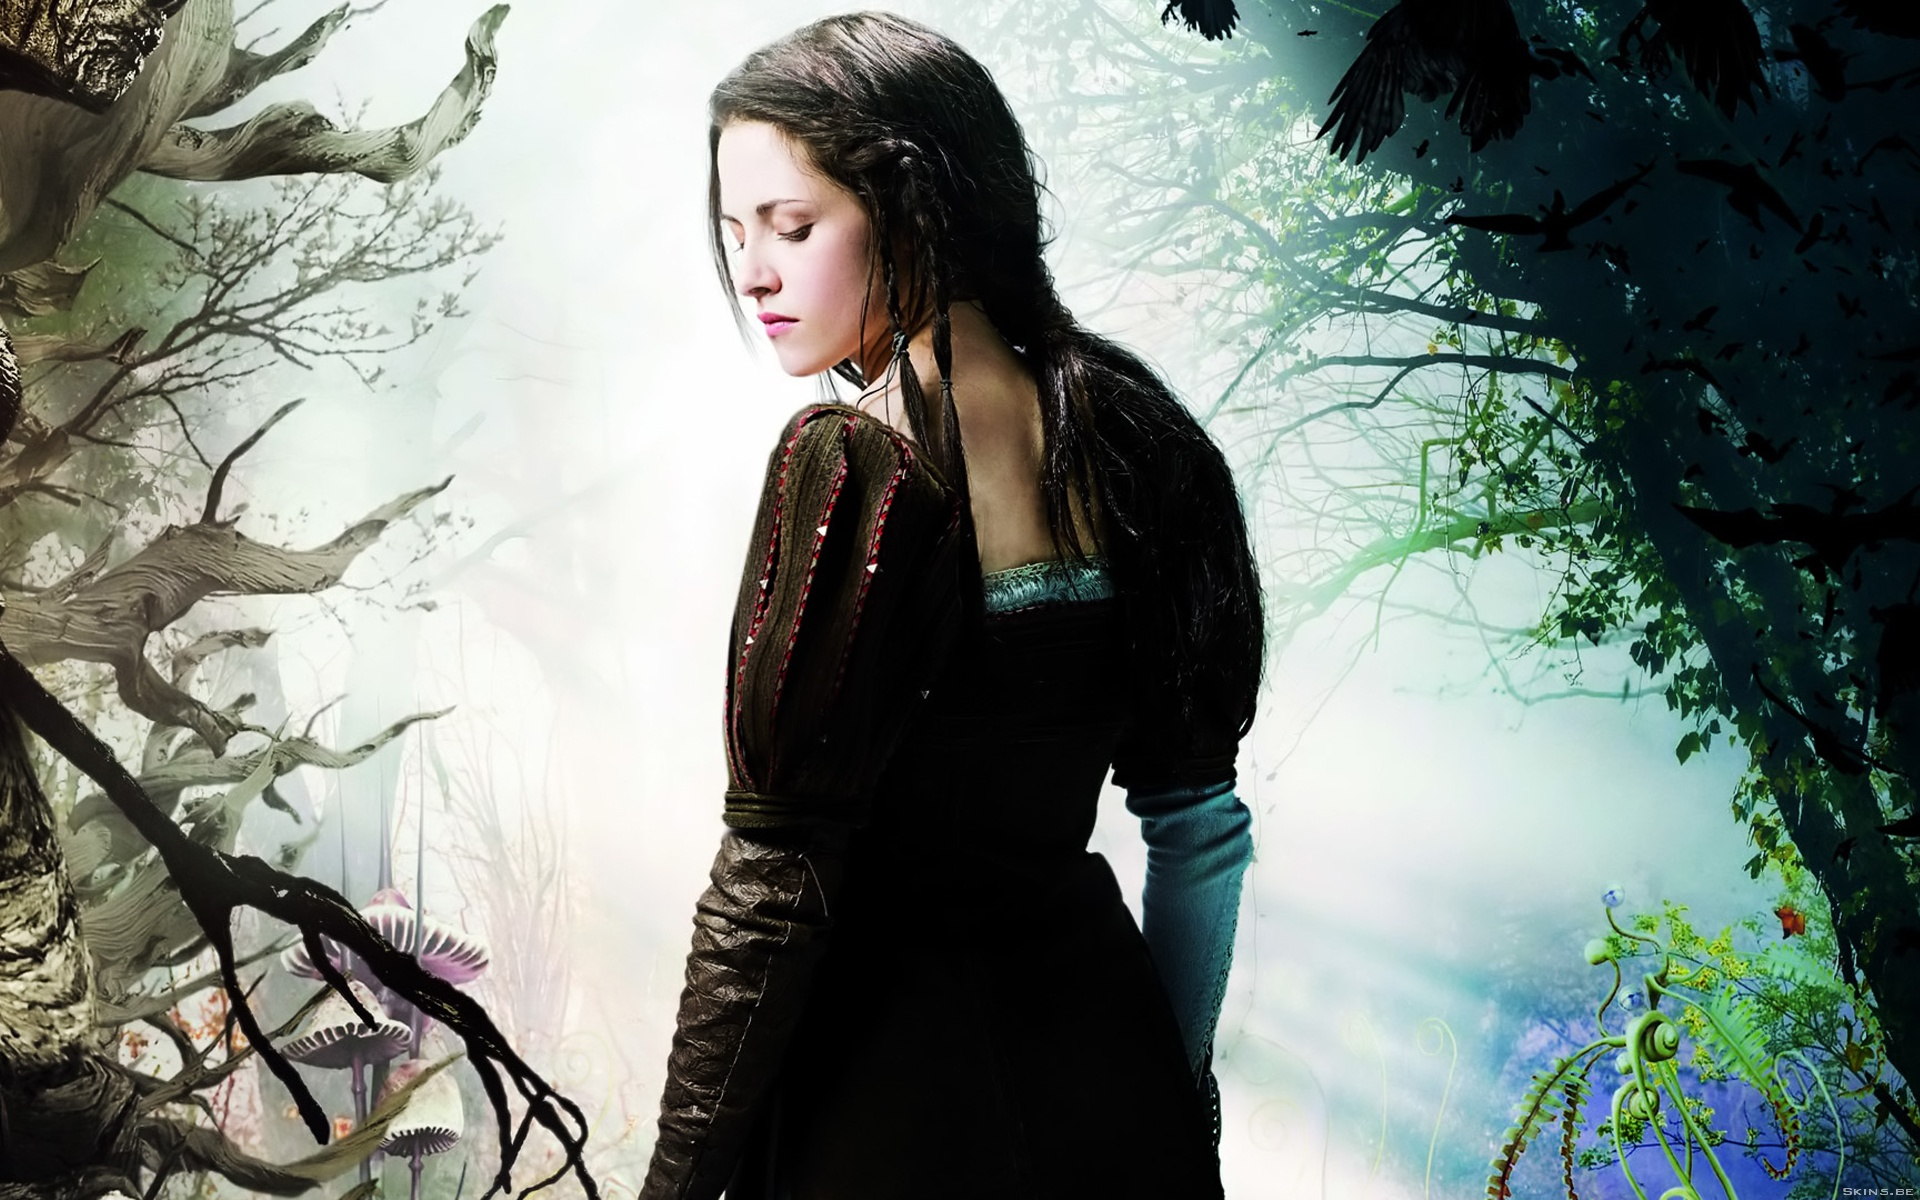 Kristen Stewart in Snow White and the Huntsman